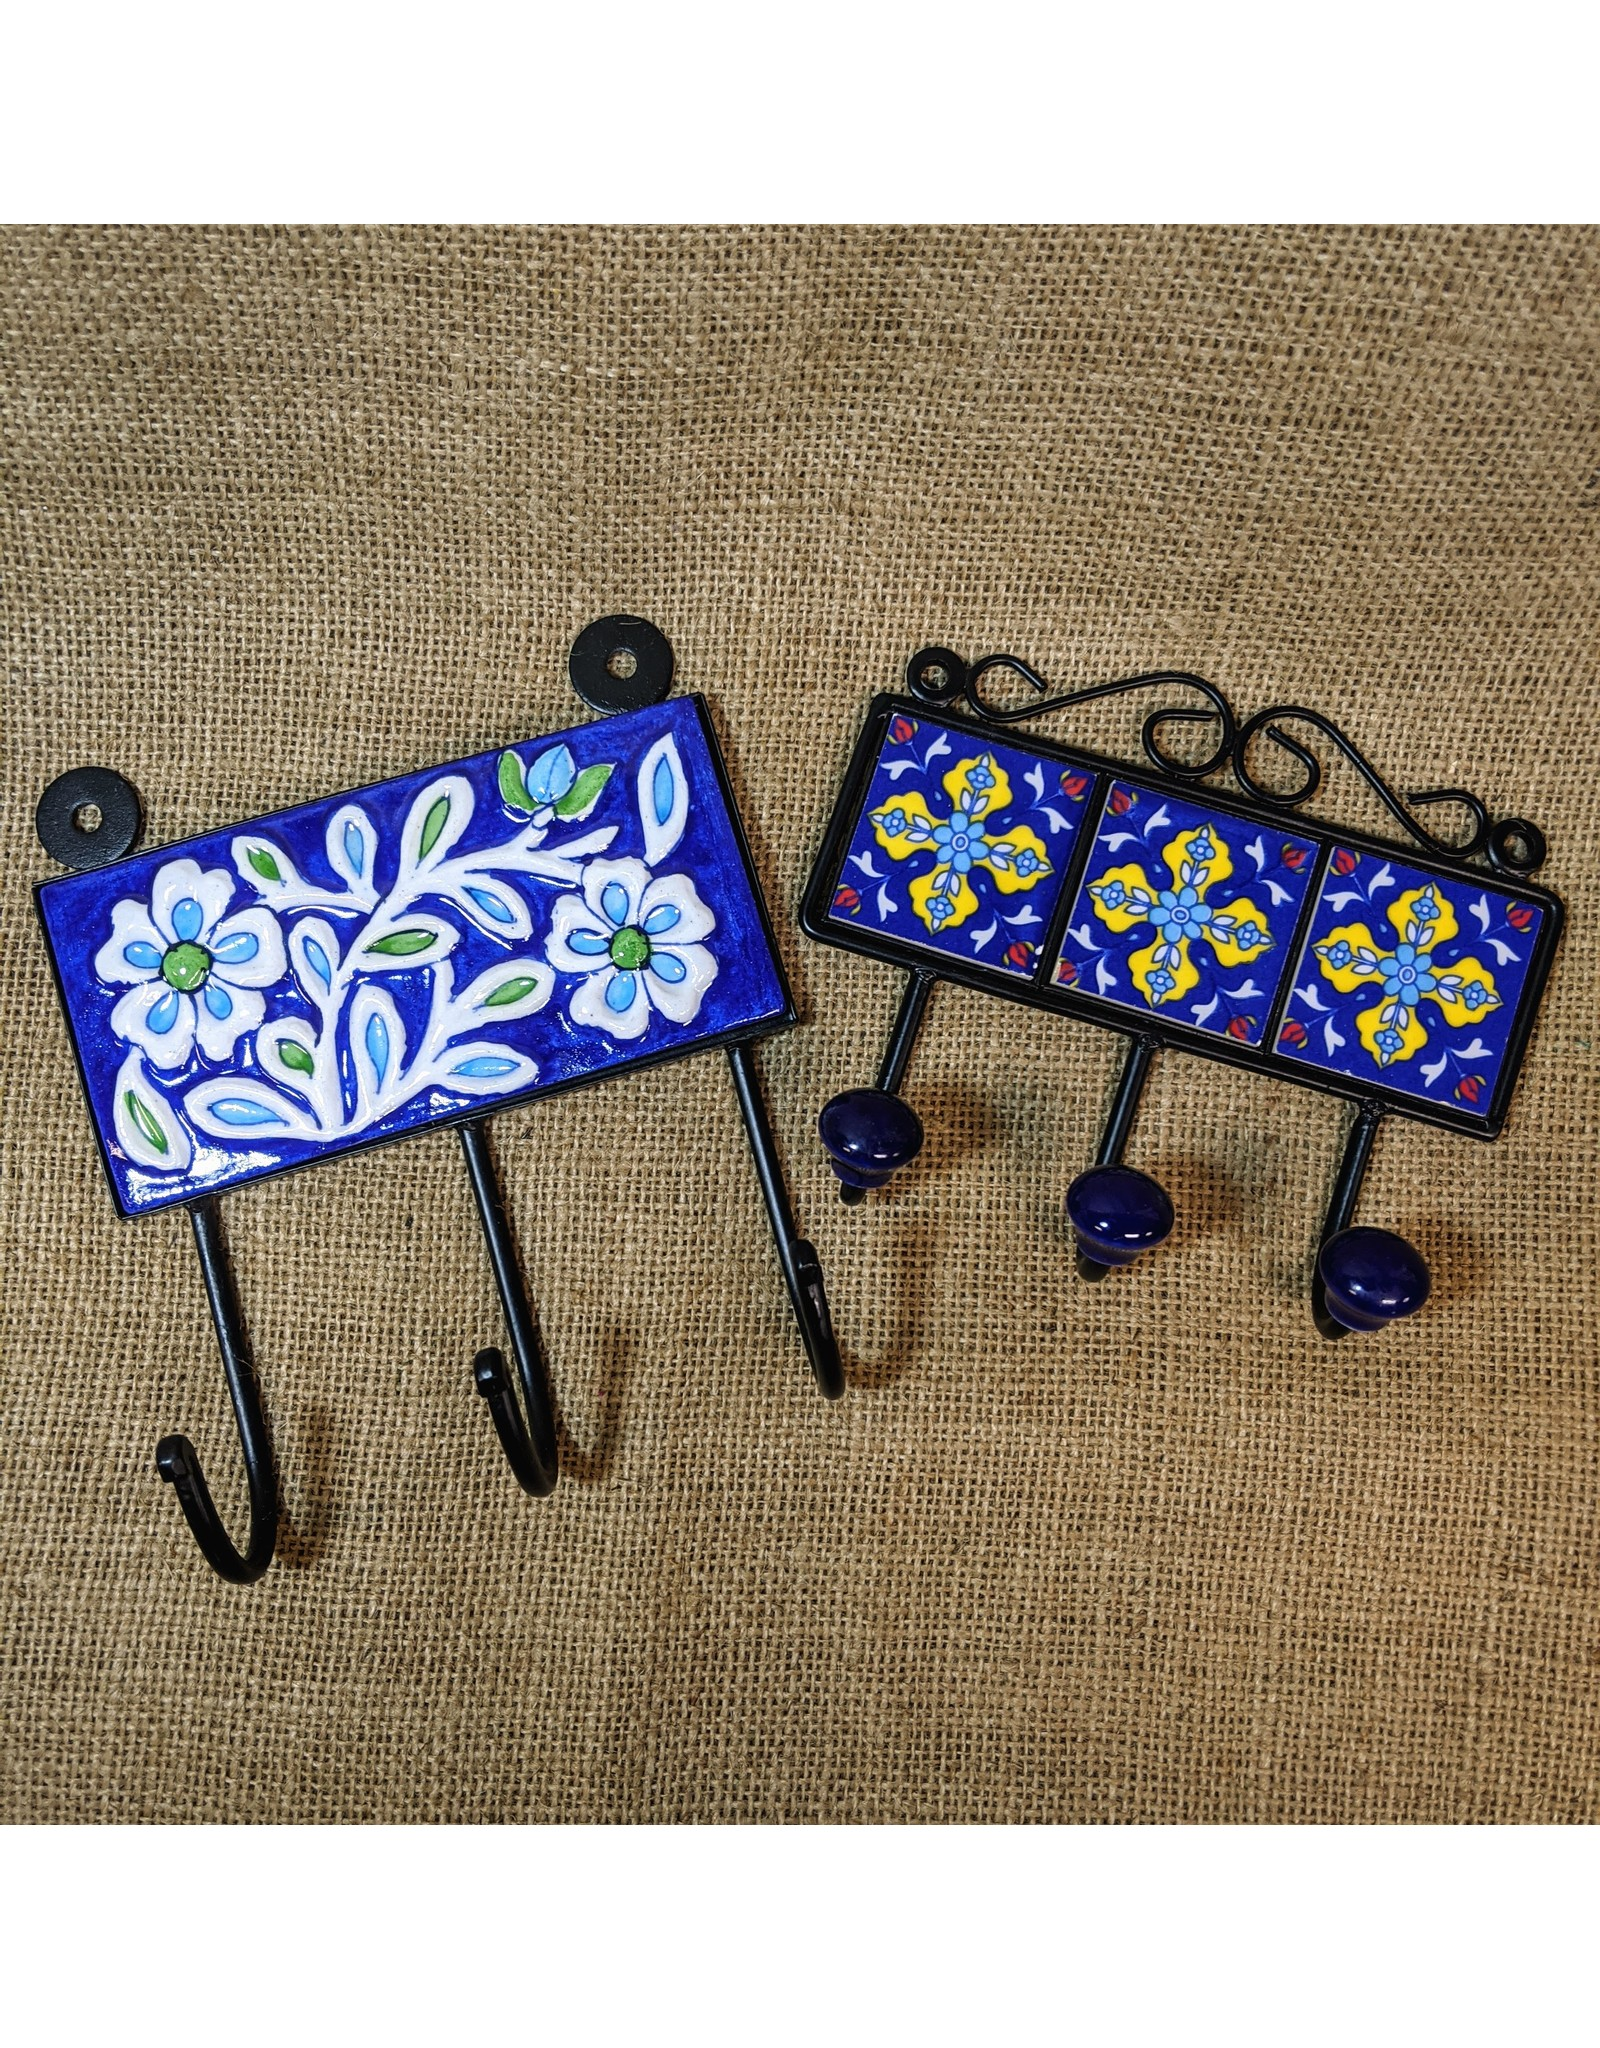 Ten Thousand Villages Ceramic Tile Wall Hooks